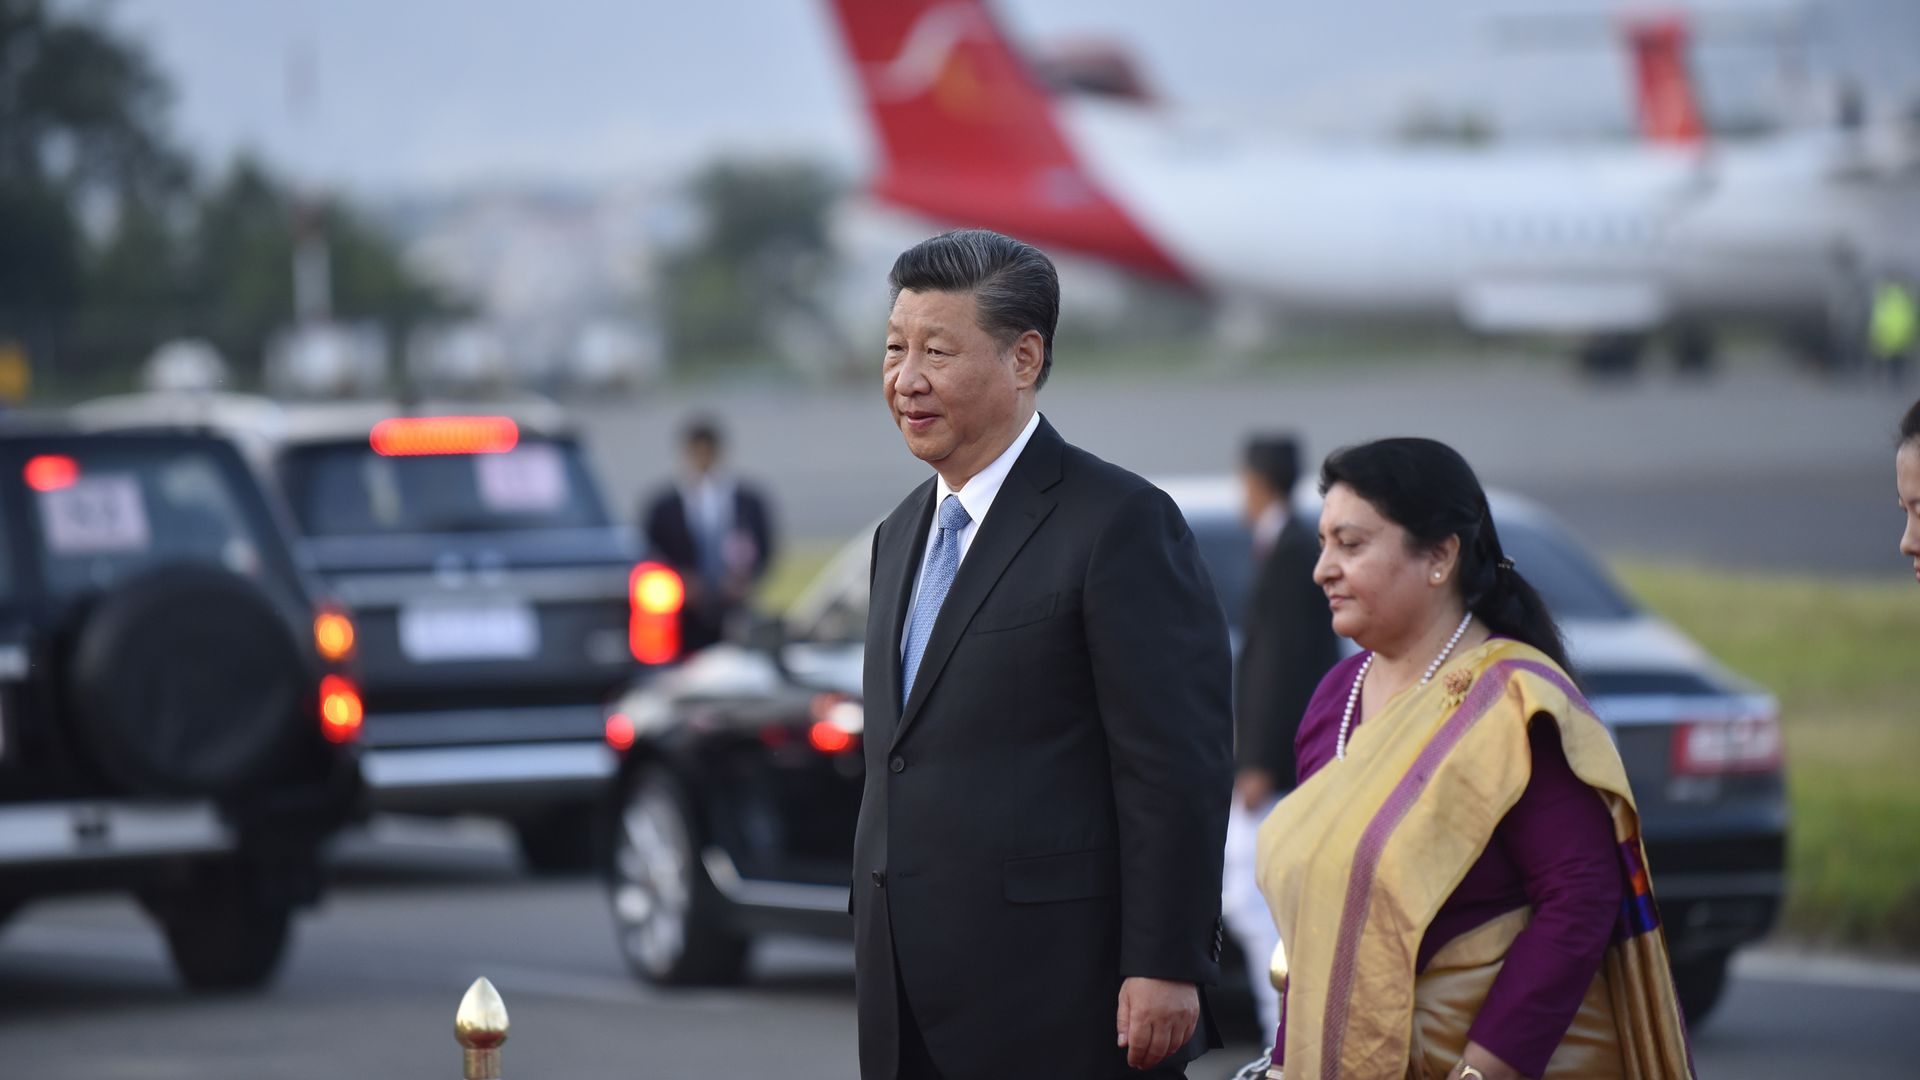 President Xi is first Chinese president to visit Nepal in more than 2 decades